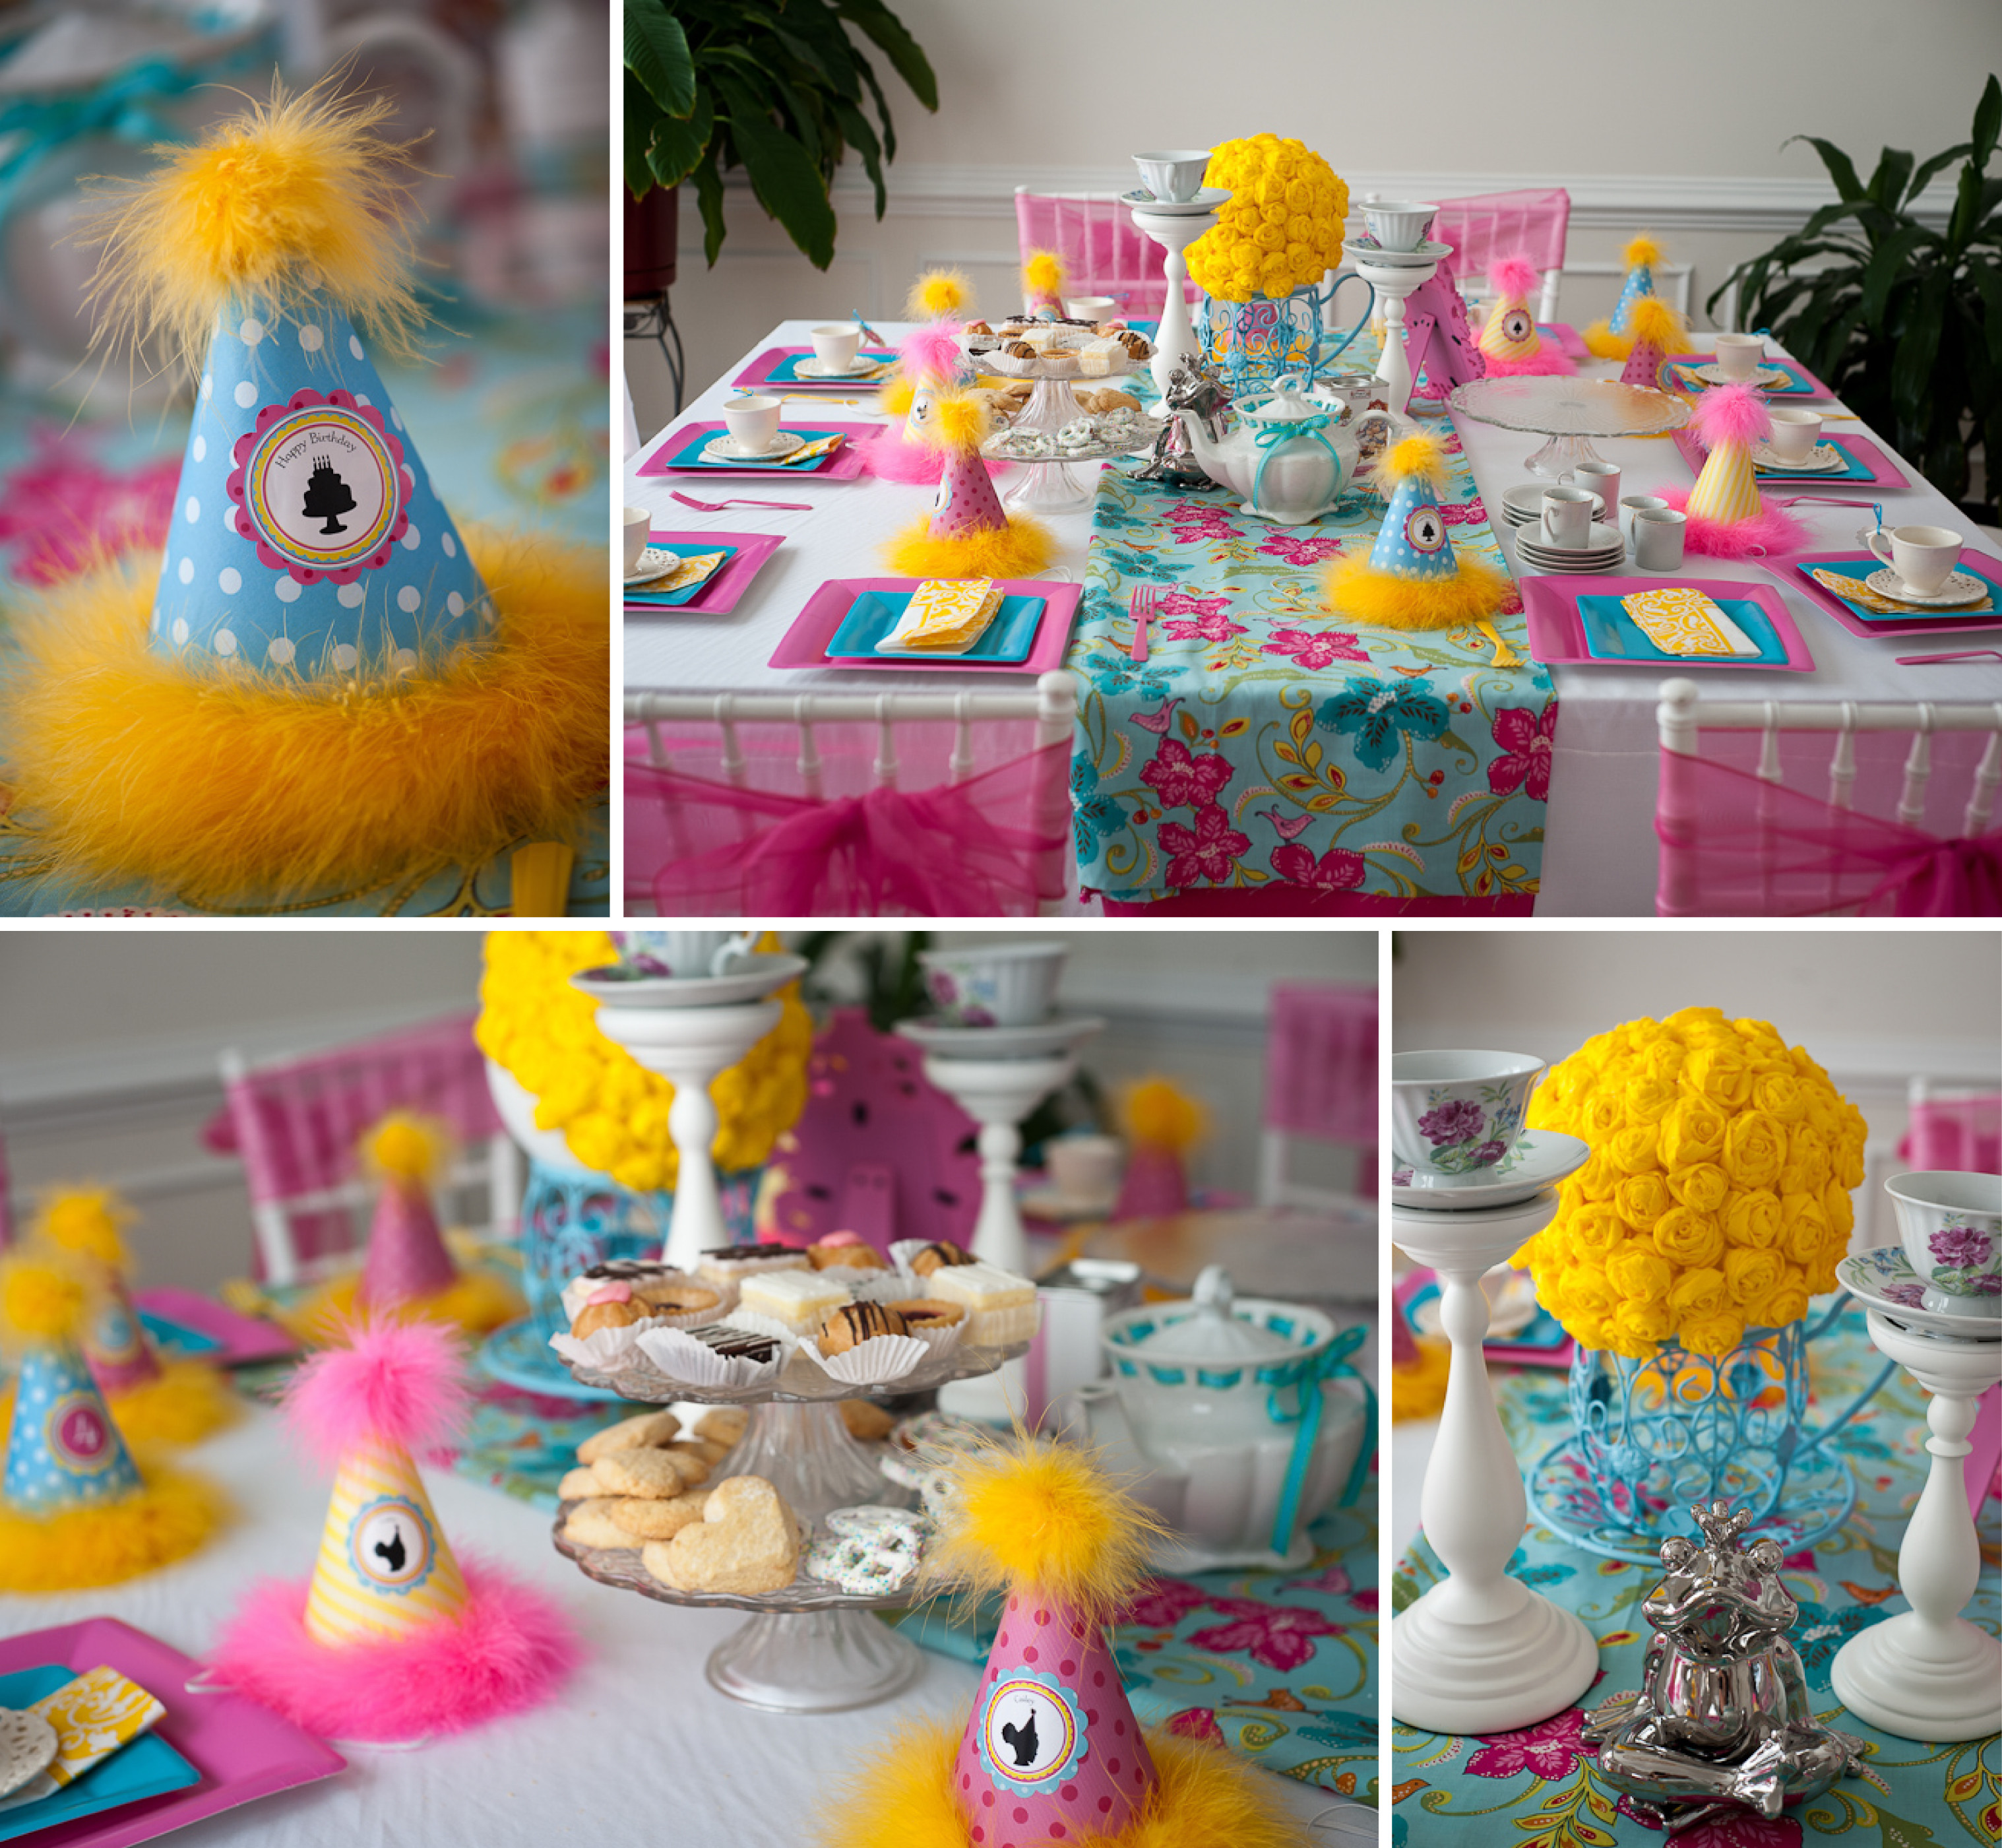 Best ideas about Baby Birthday Decorations . Save or Pin A Precious Tea Party with Tutus and Baby Dolls Anders Now.